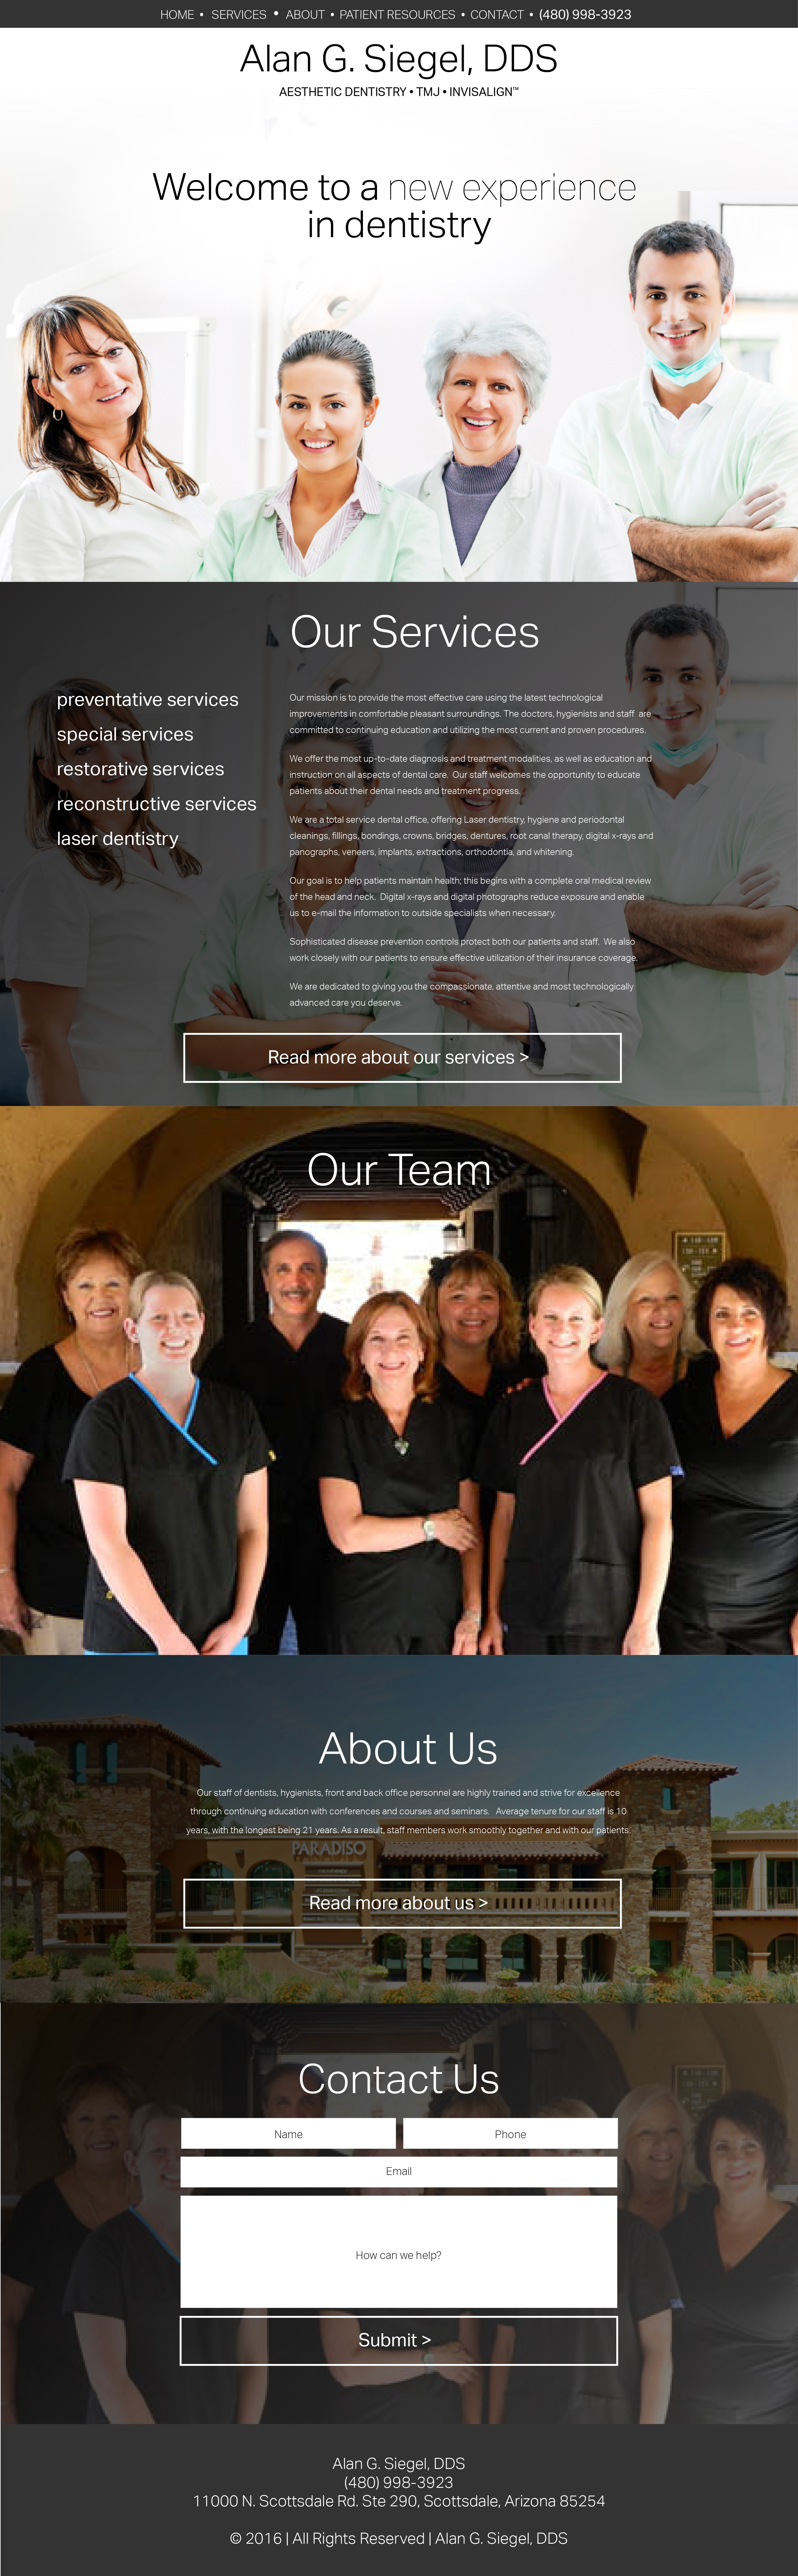 Total Dental Care Middle Island Reviews